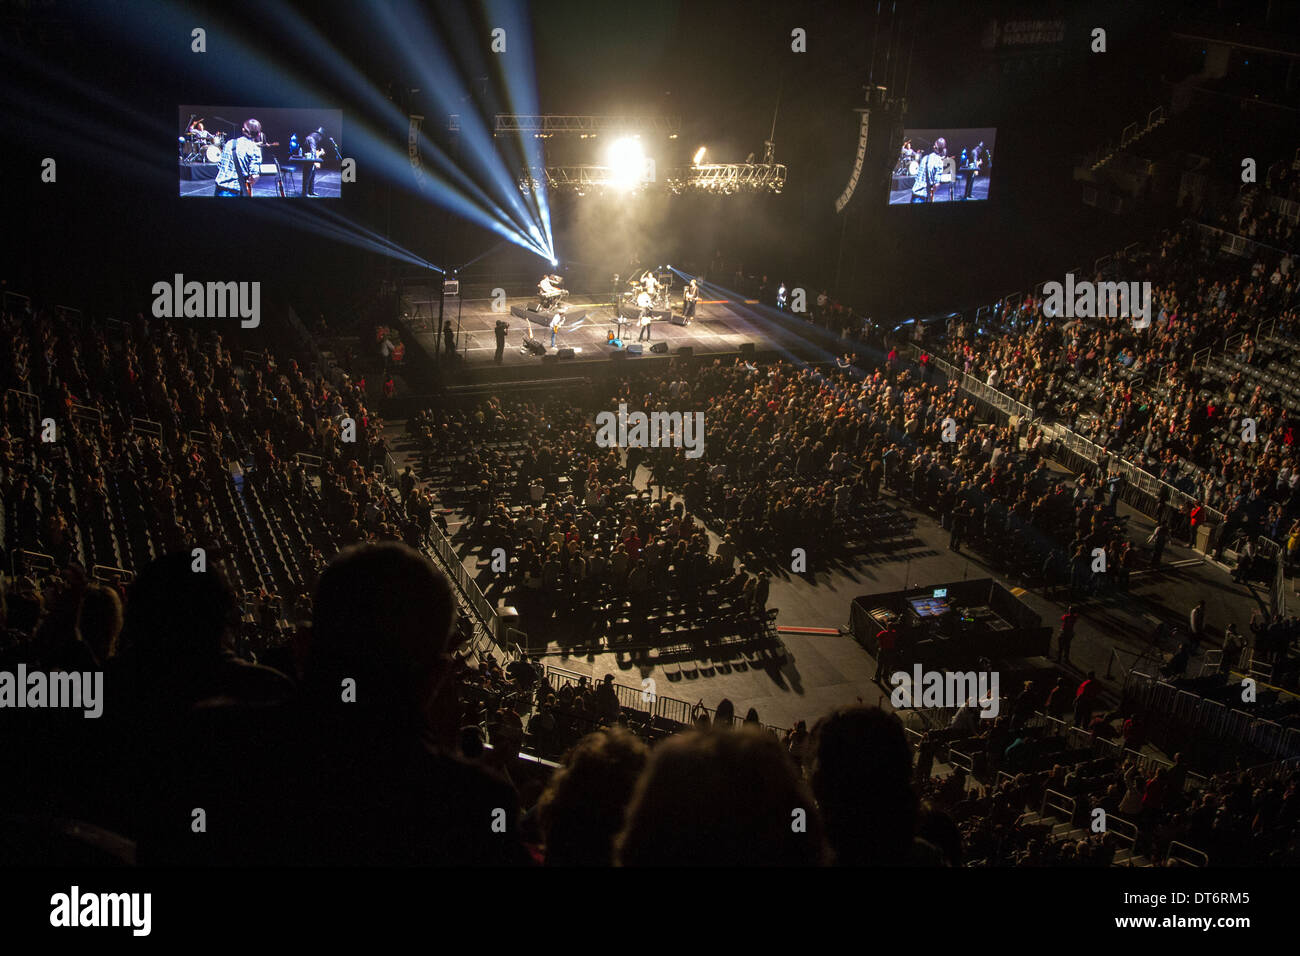 Concert Ny Stock Photos & Concert Ny Stock Images - Alamy